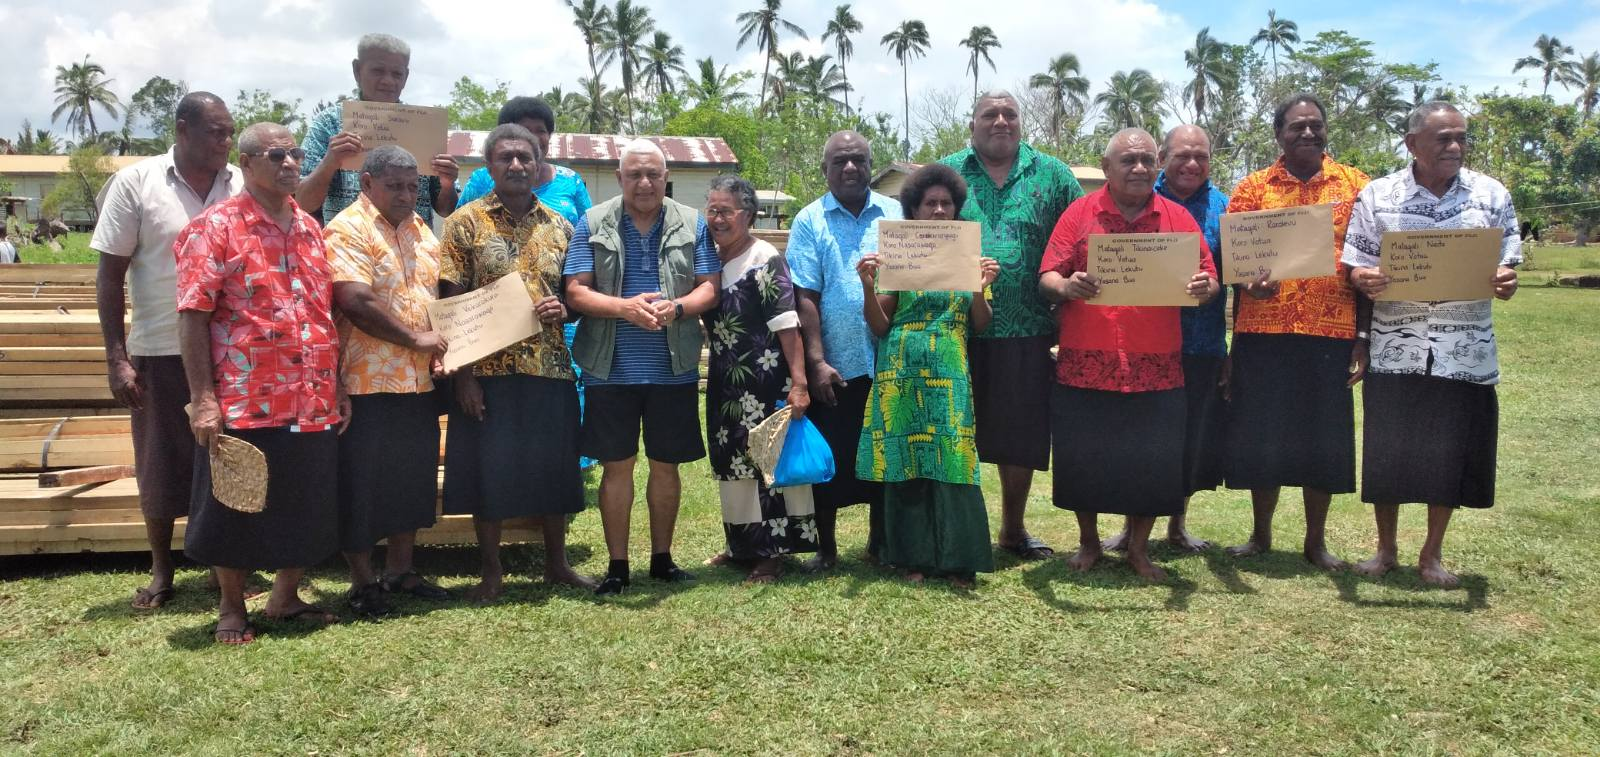 Pine Group Delivers First Batch of Housing Rehabilitation Materials to its Landowners in Bua